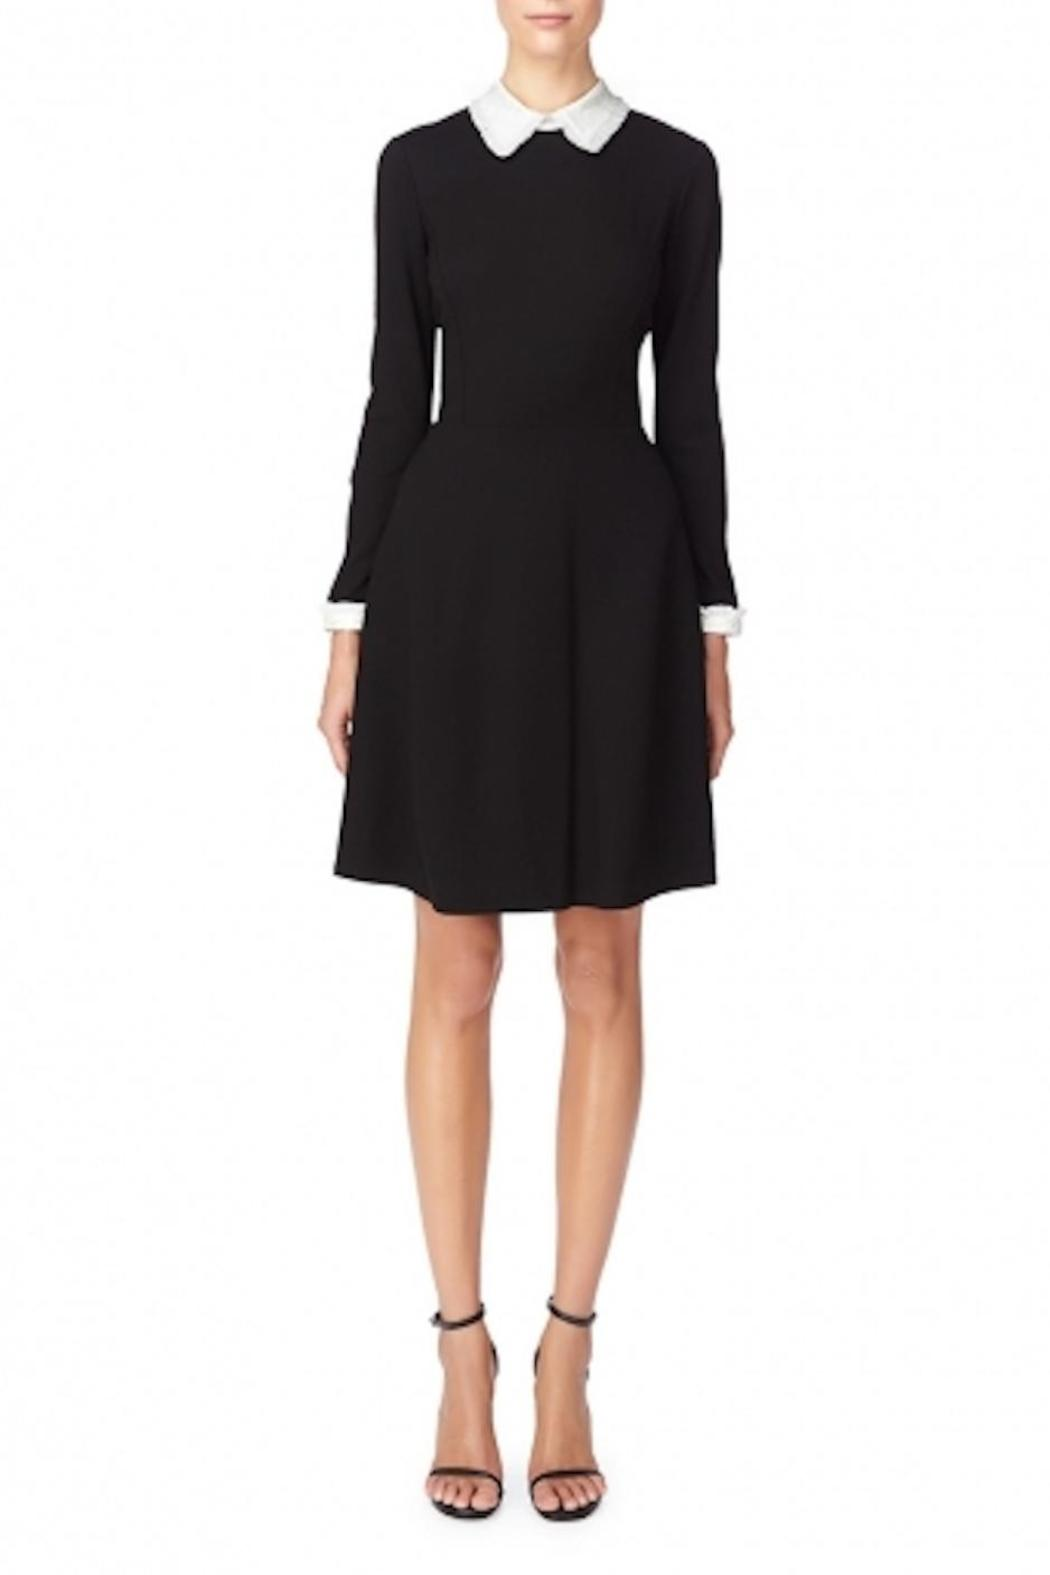 Erin Fetherston Tate Collar Dress Front Cropped Image